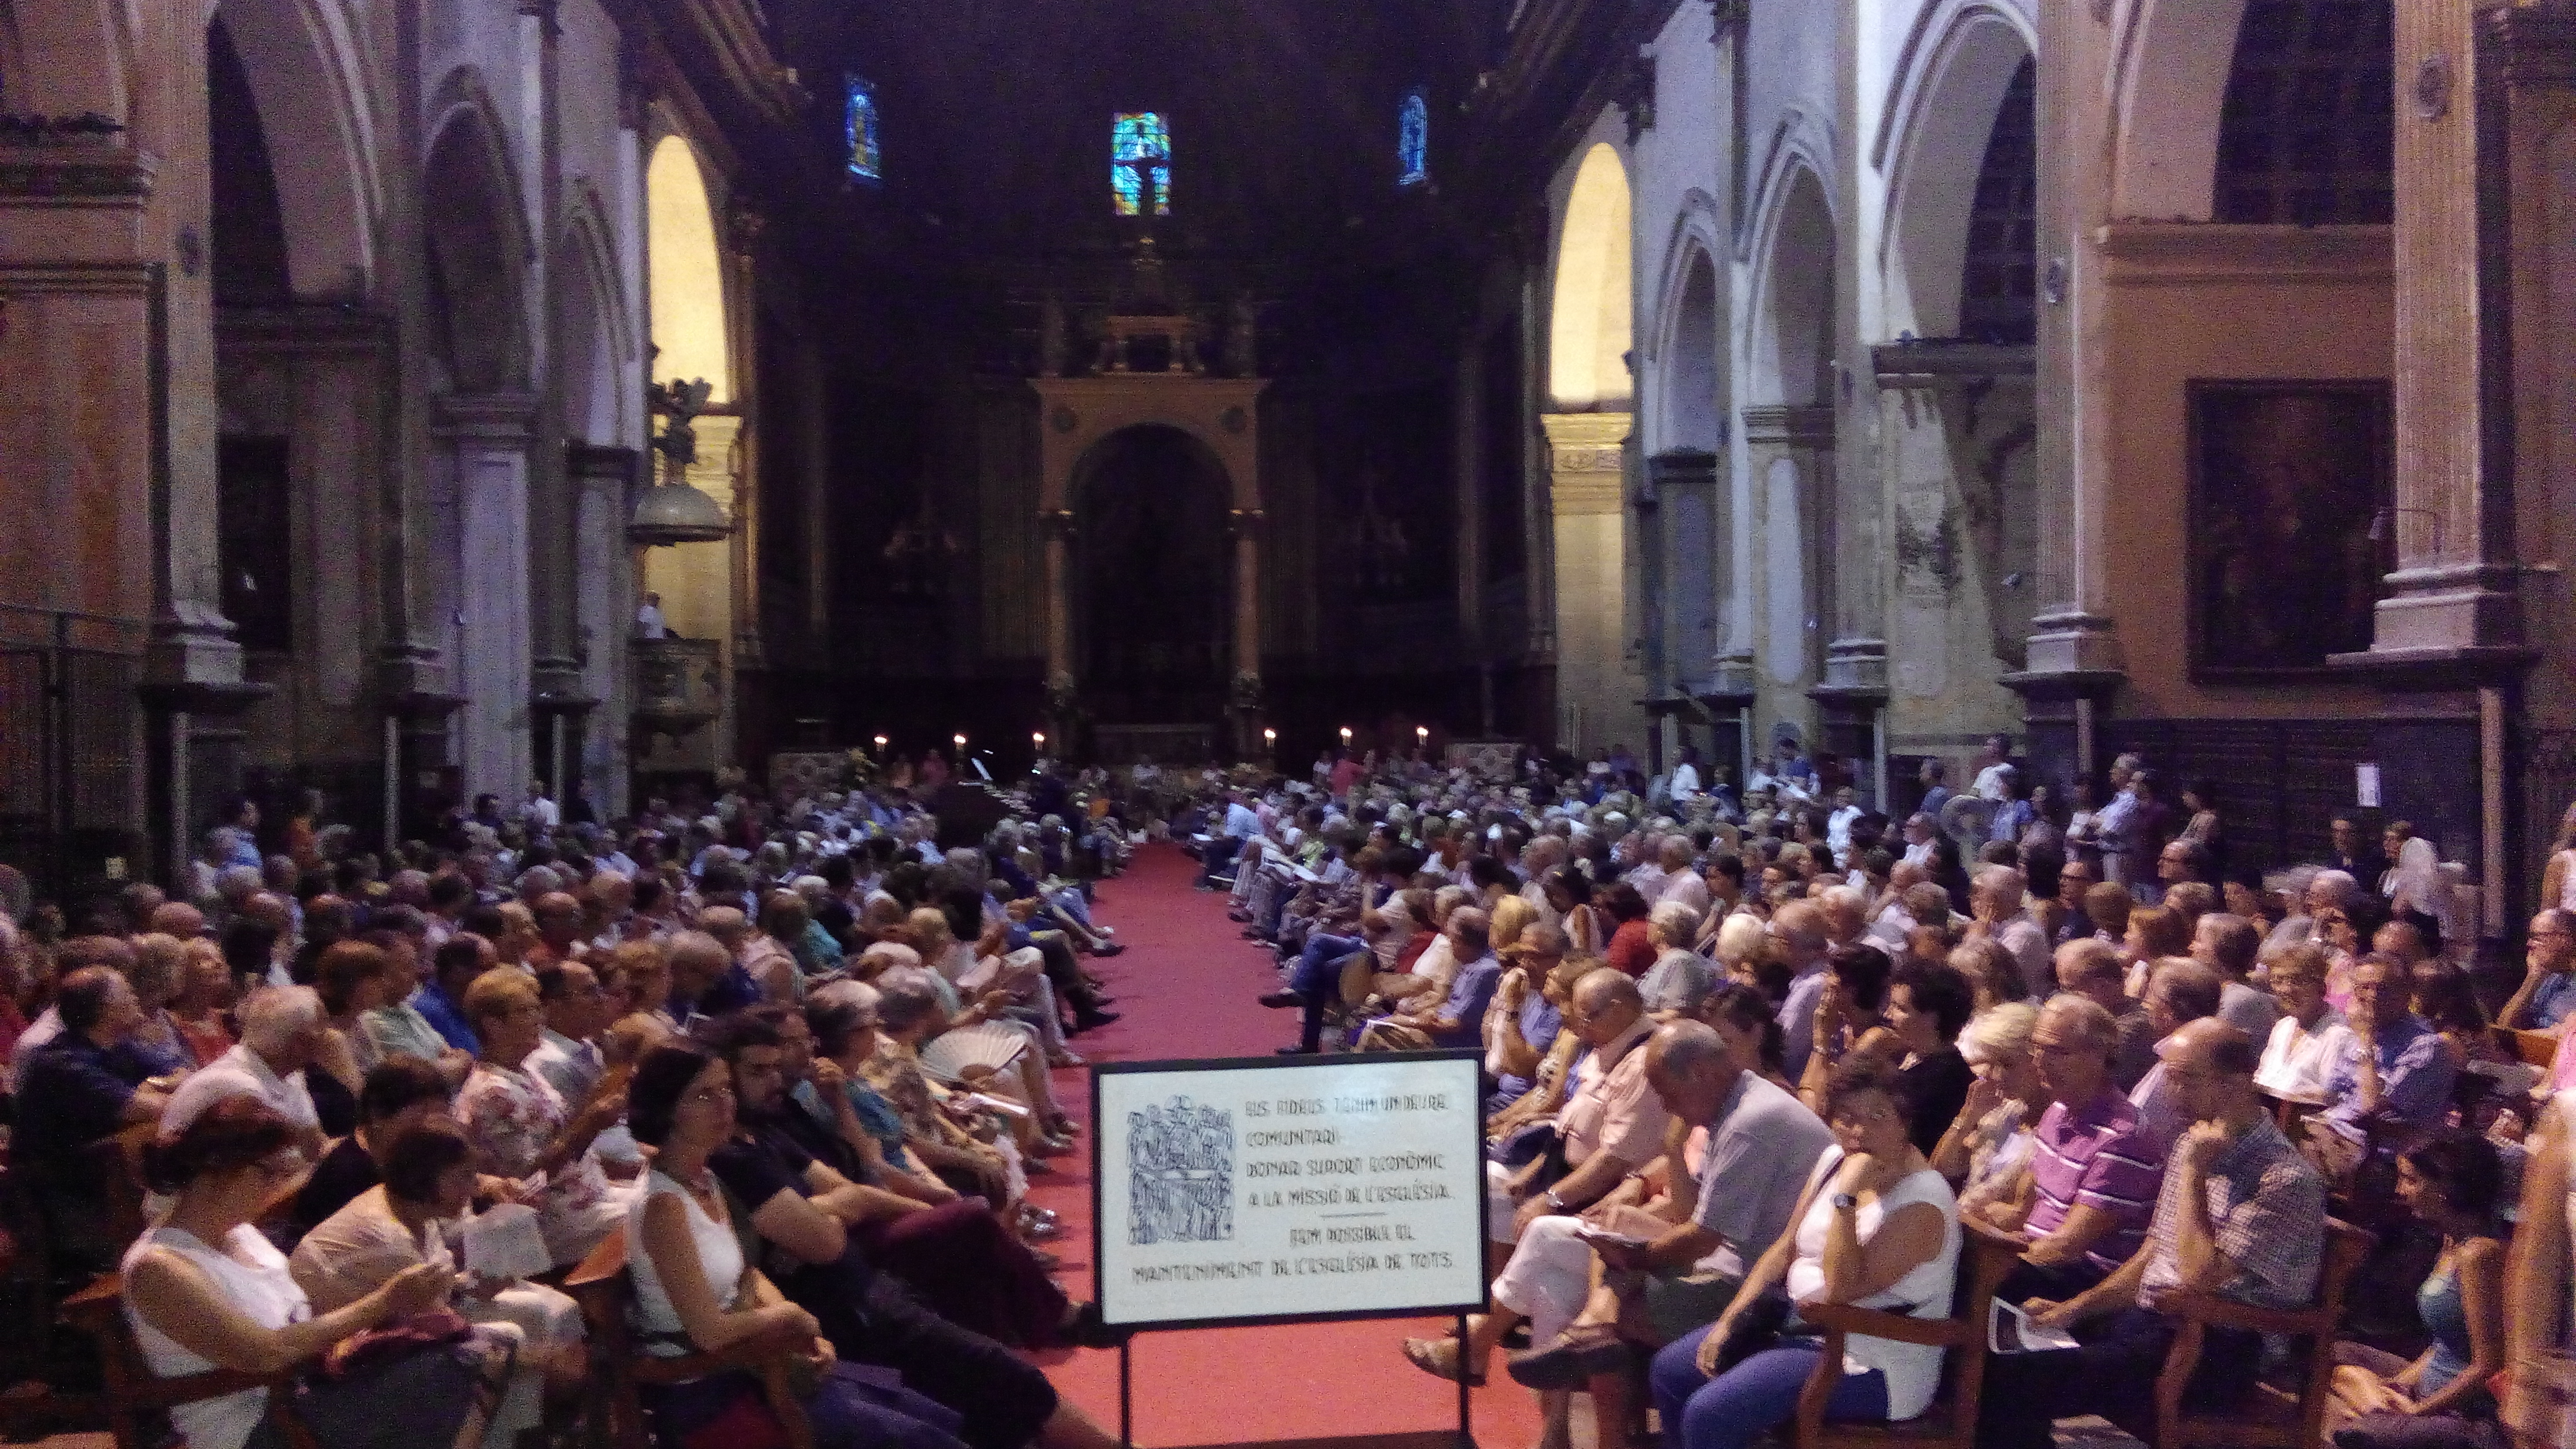 Audience for the 3 Organs Concert